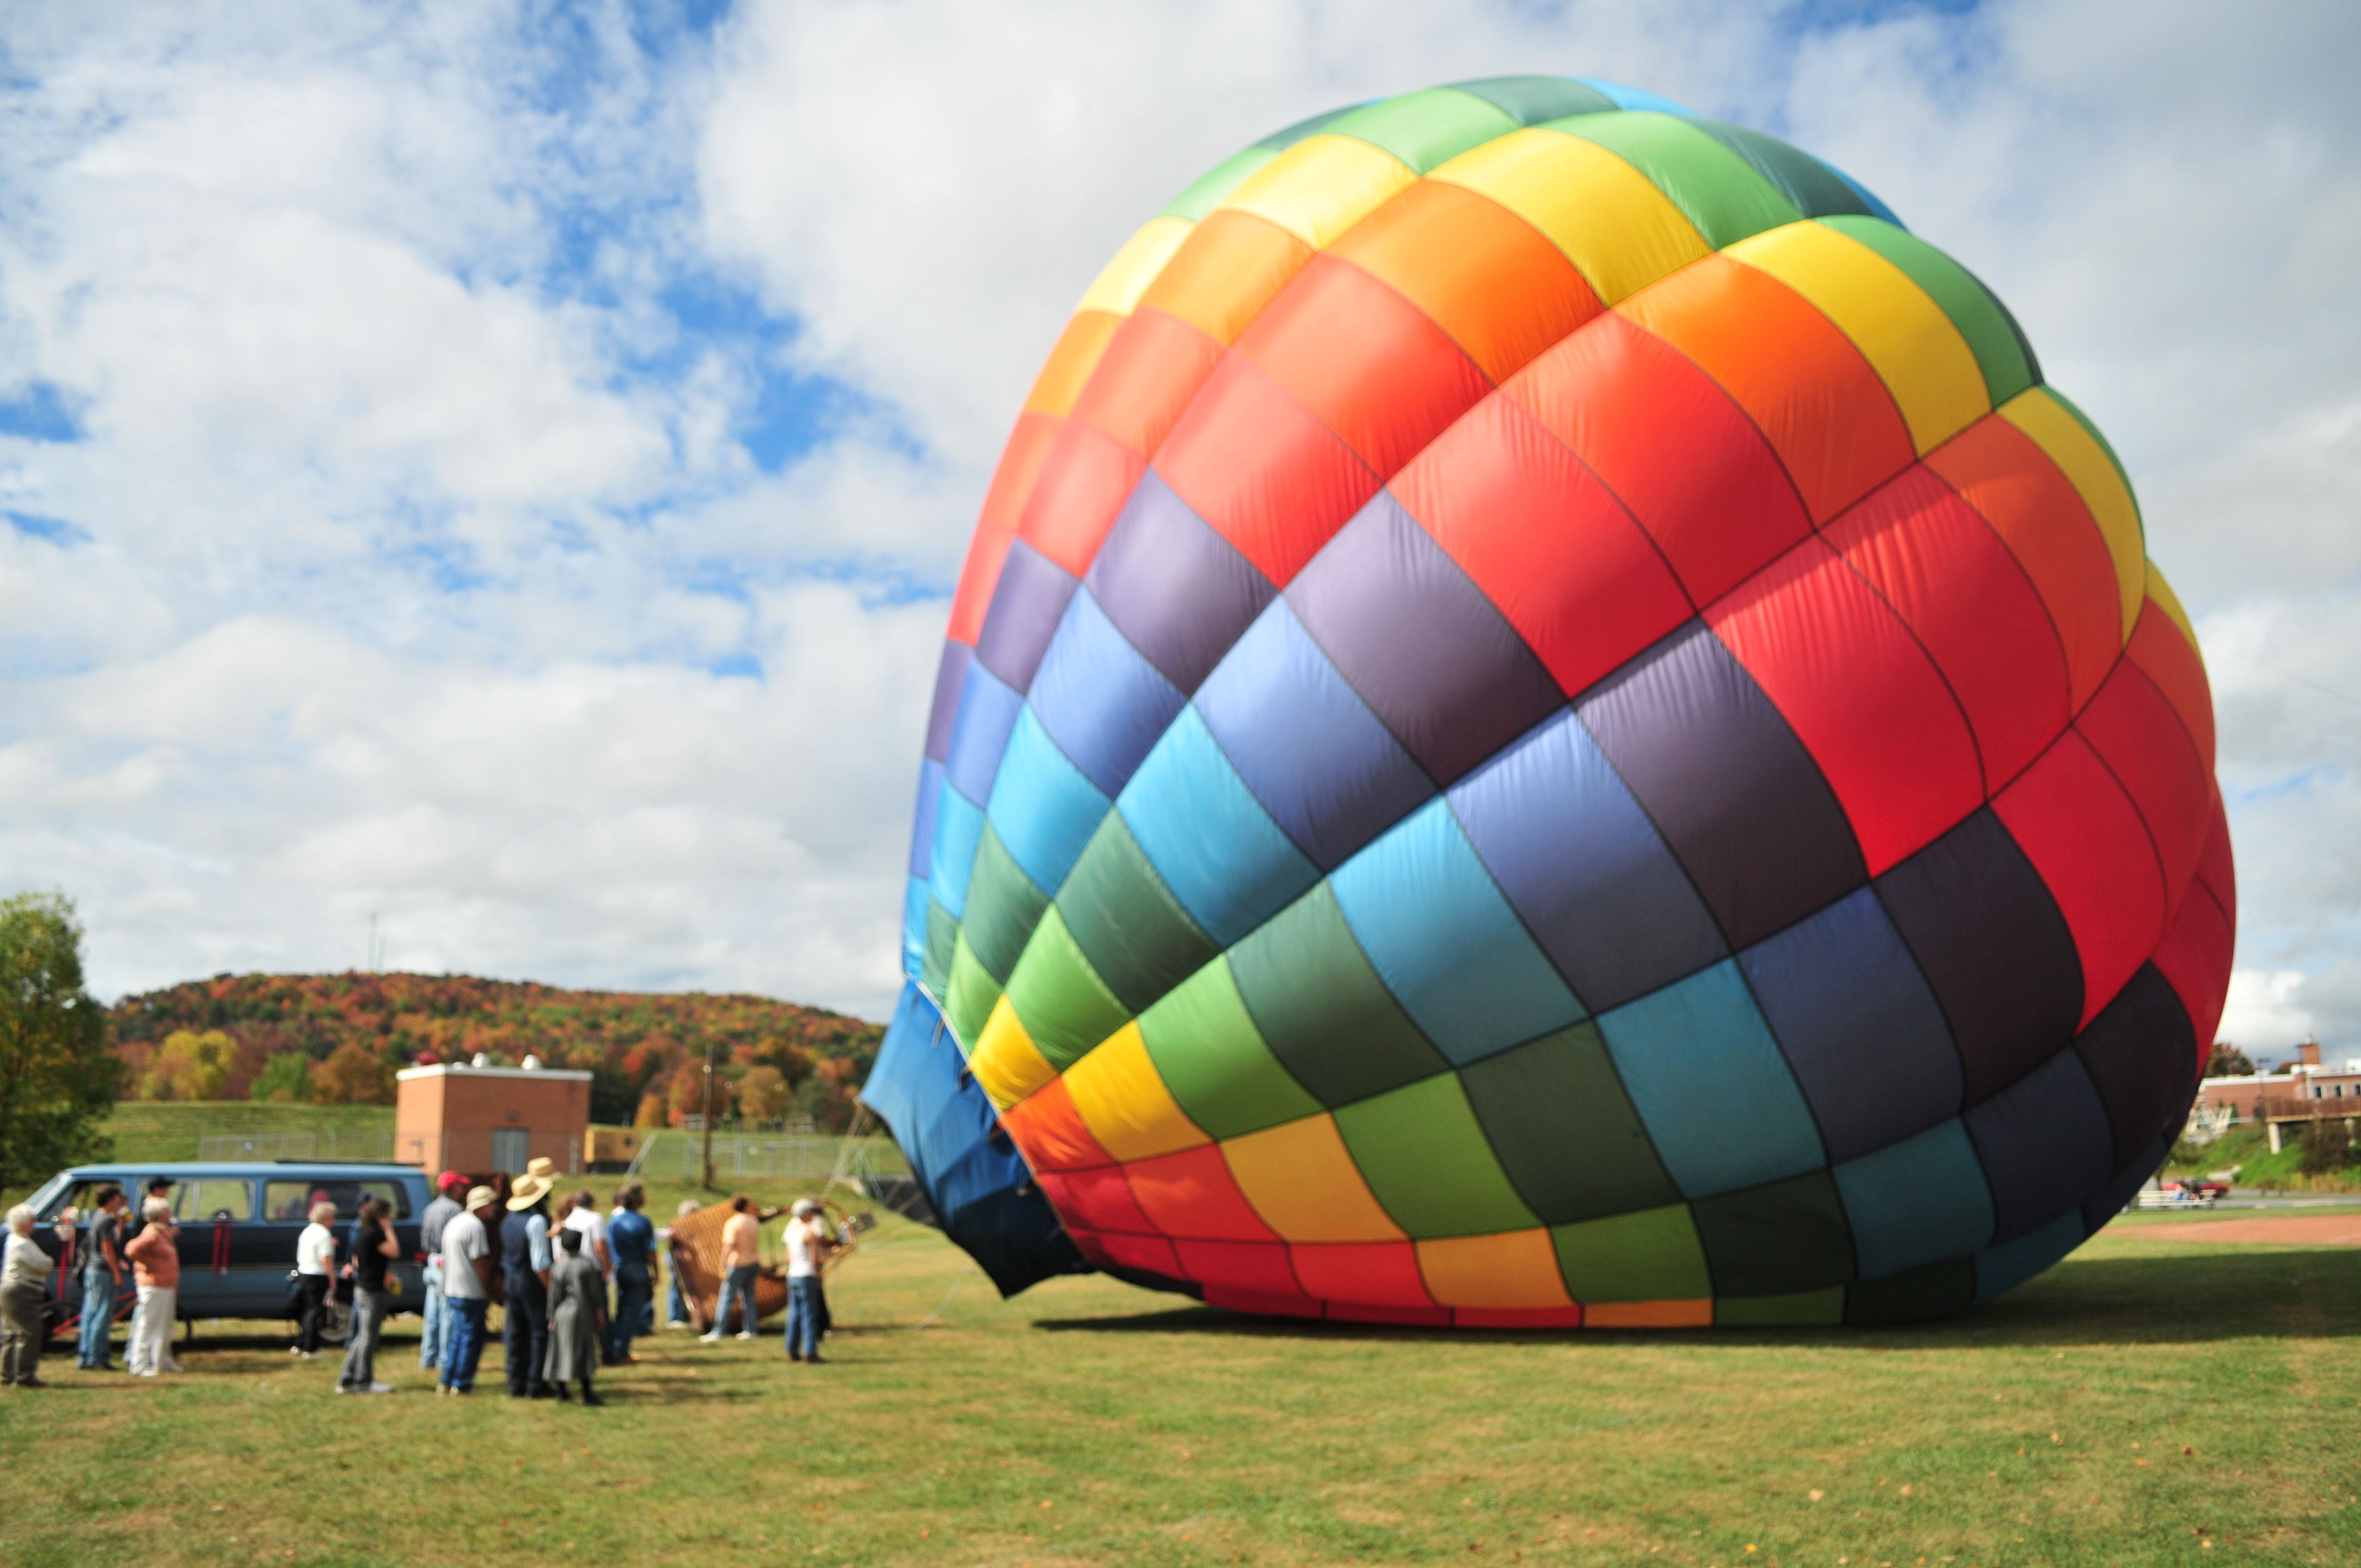 Hot Air Balloon rides are offered each year, weather